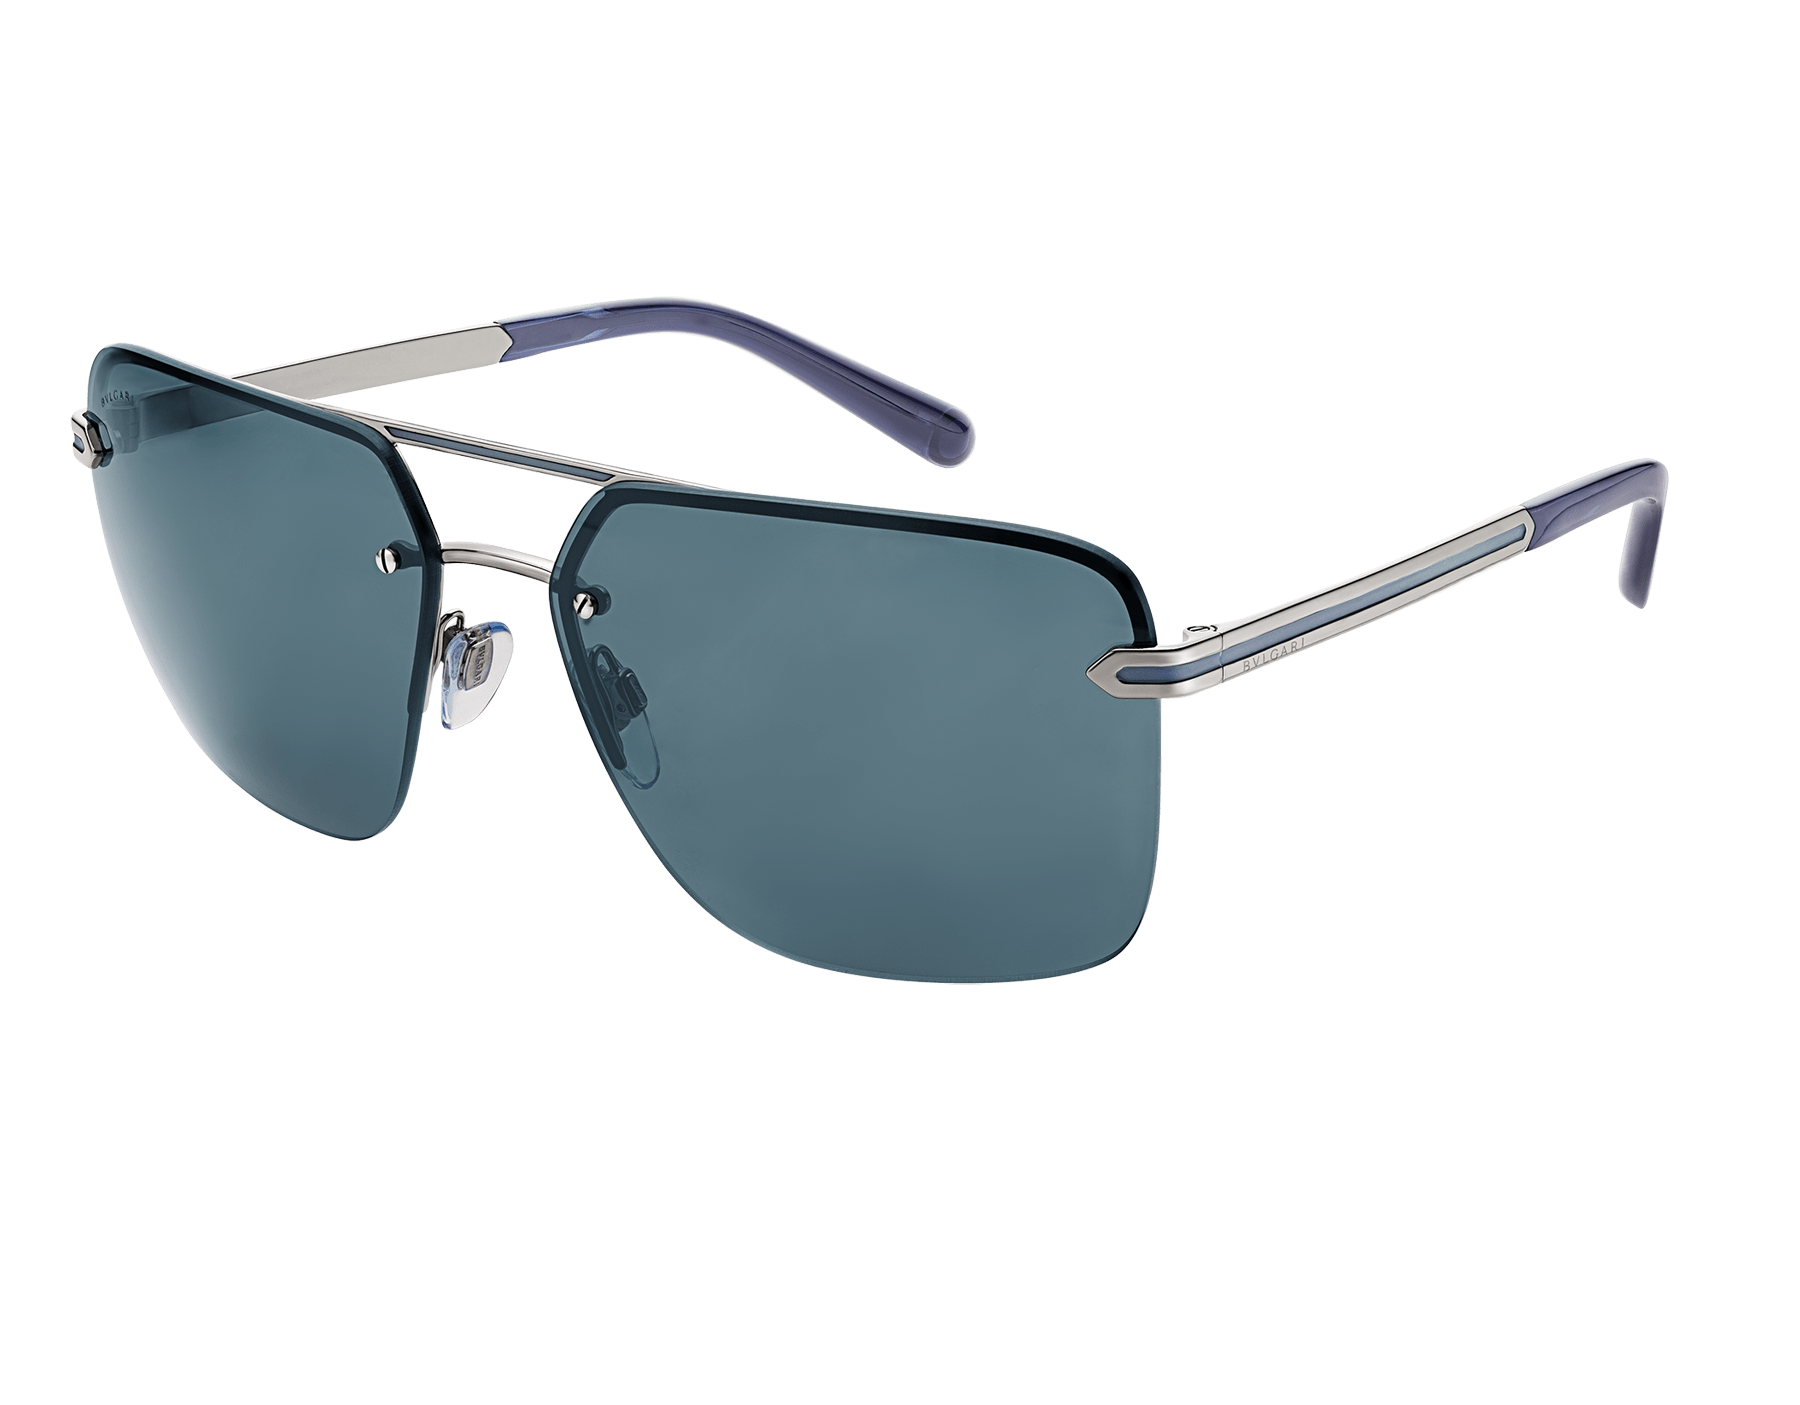 Bvlgari Bvlgari Man metal double bridge rectangular sunglasses. 904057 image 1